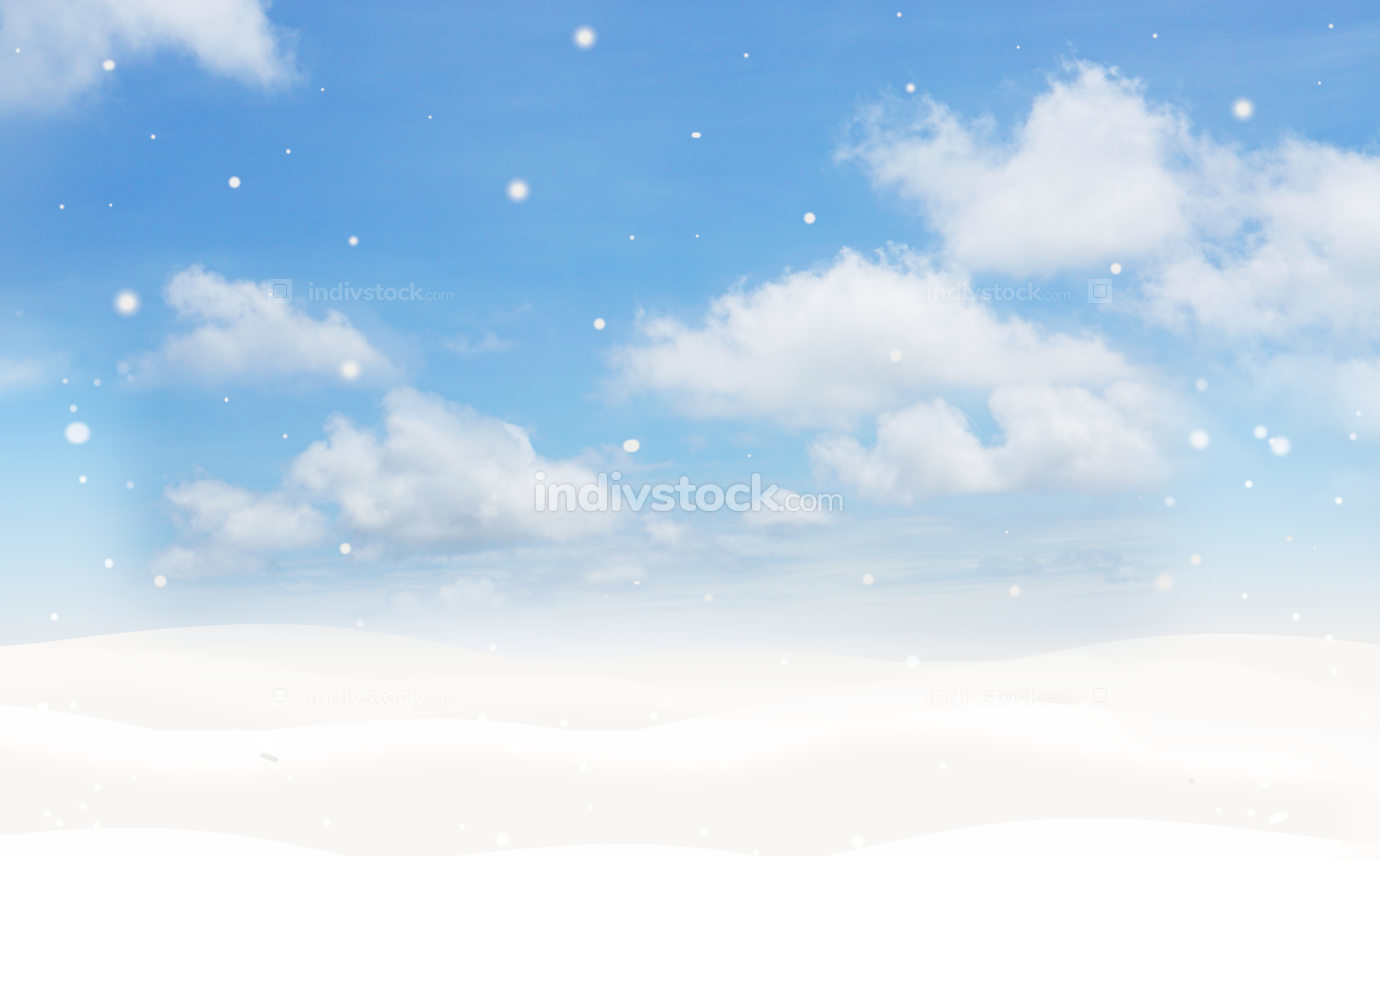 winter snow snowflakes background 3d-illustration